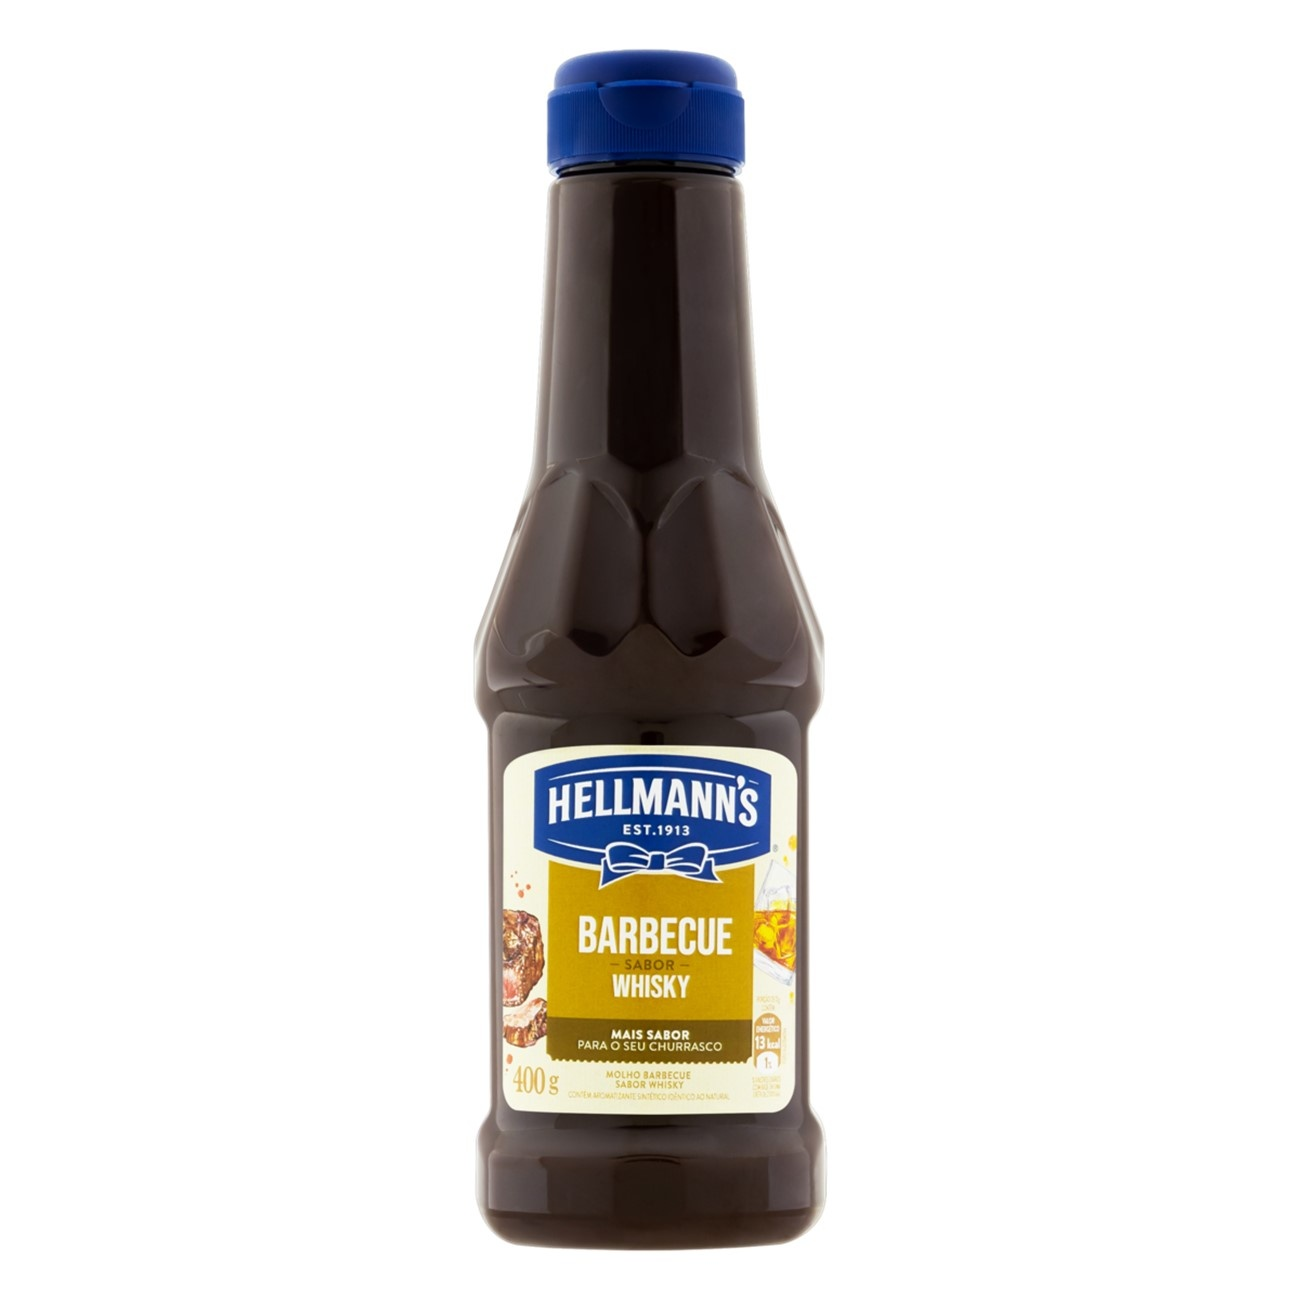 Barbecue Hellmann's Whisky 400g